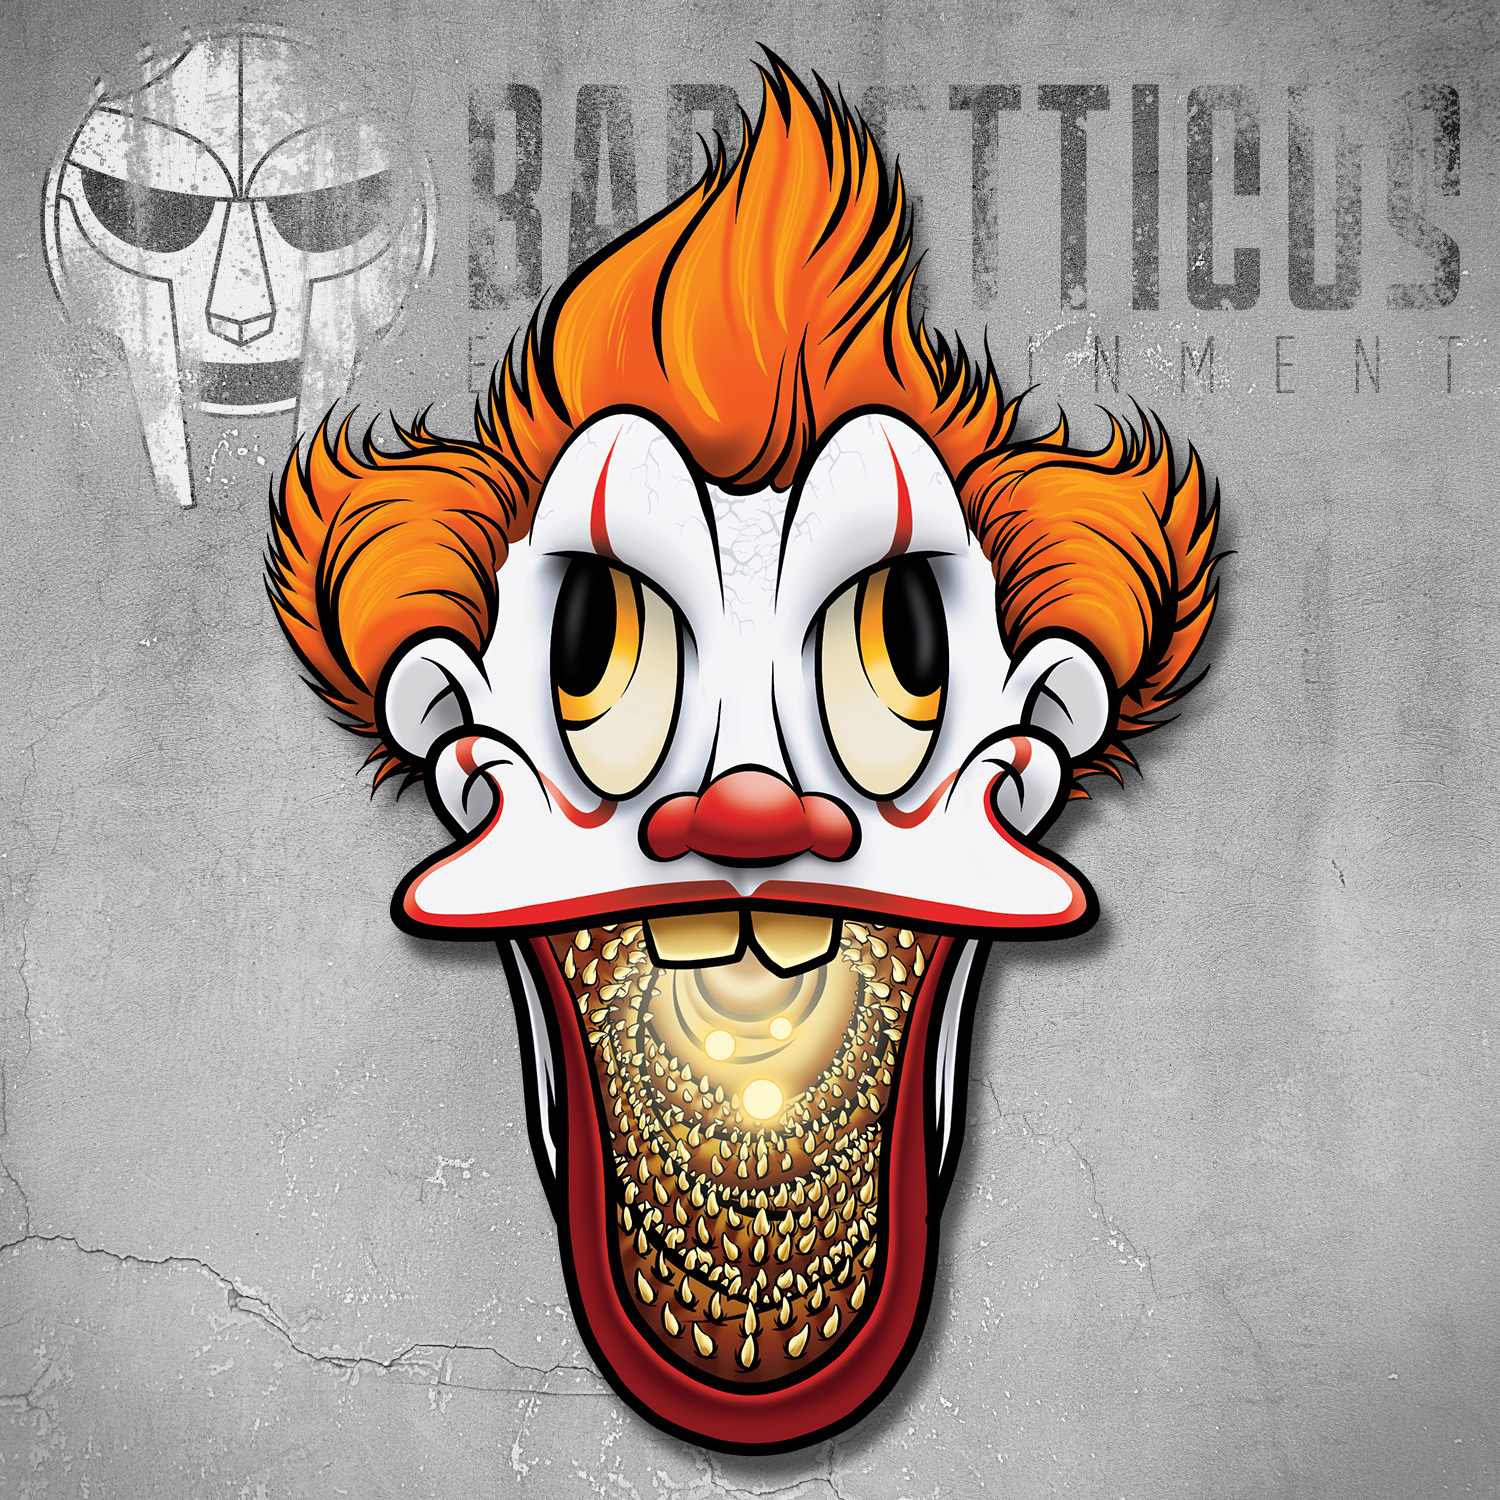 Disney_IT_Pennywise_STICKER_LISTING--1500x1500.png